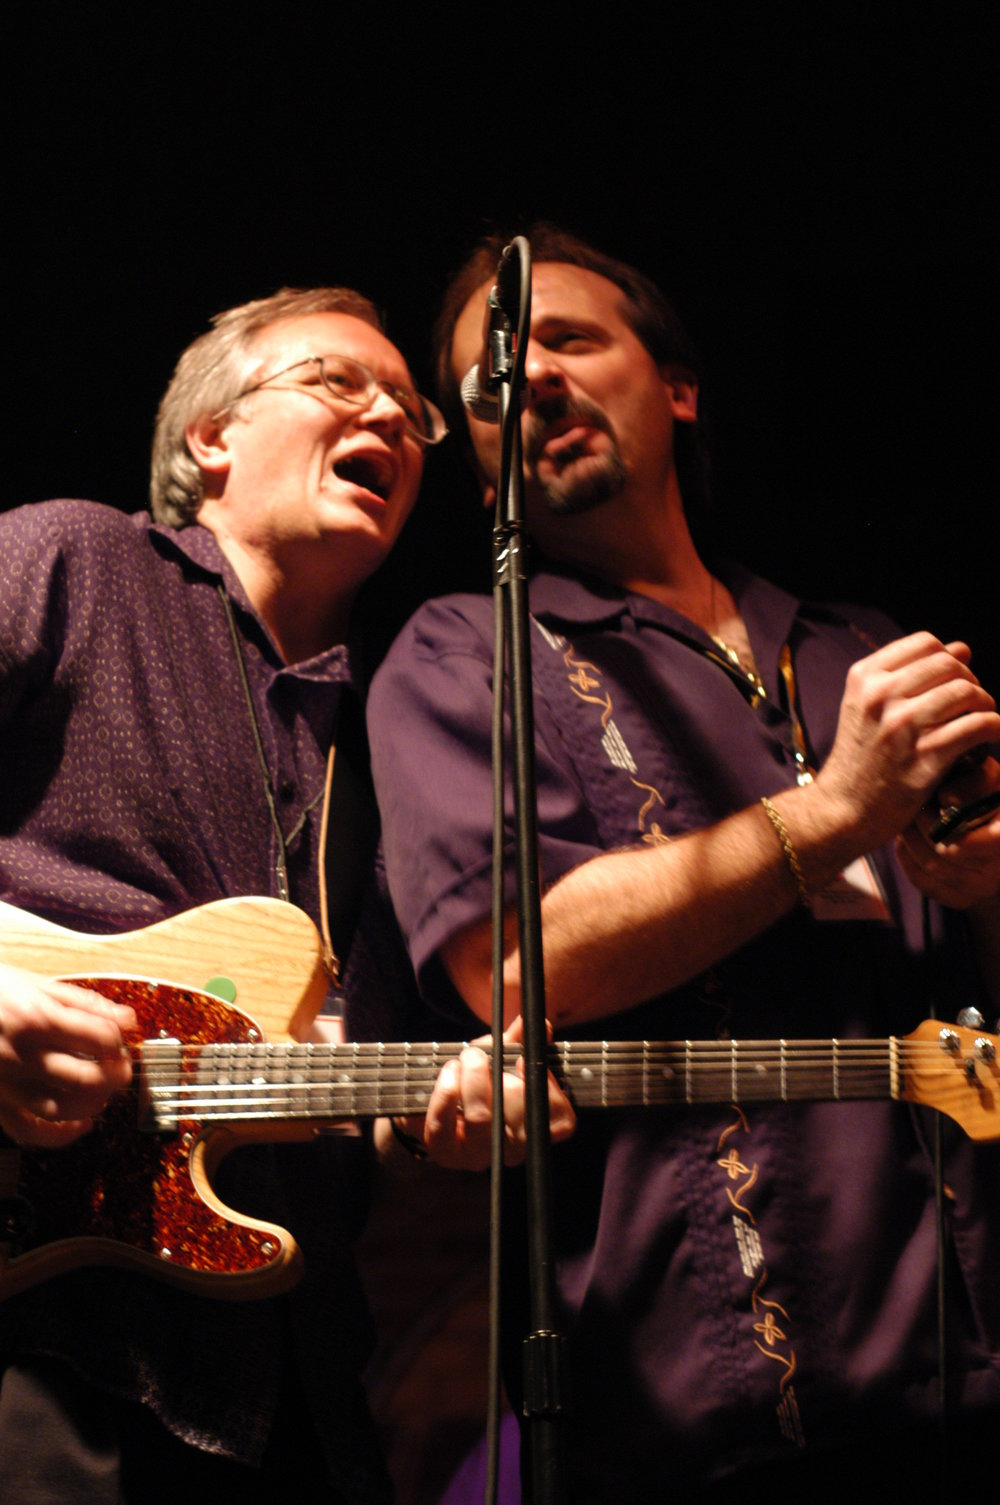 Paul Turnbull and Jack Sanso. Black Cat Otis CD release at Hard Rock Cafe, Pgh. PA